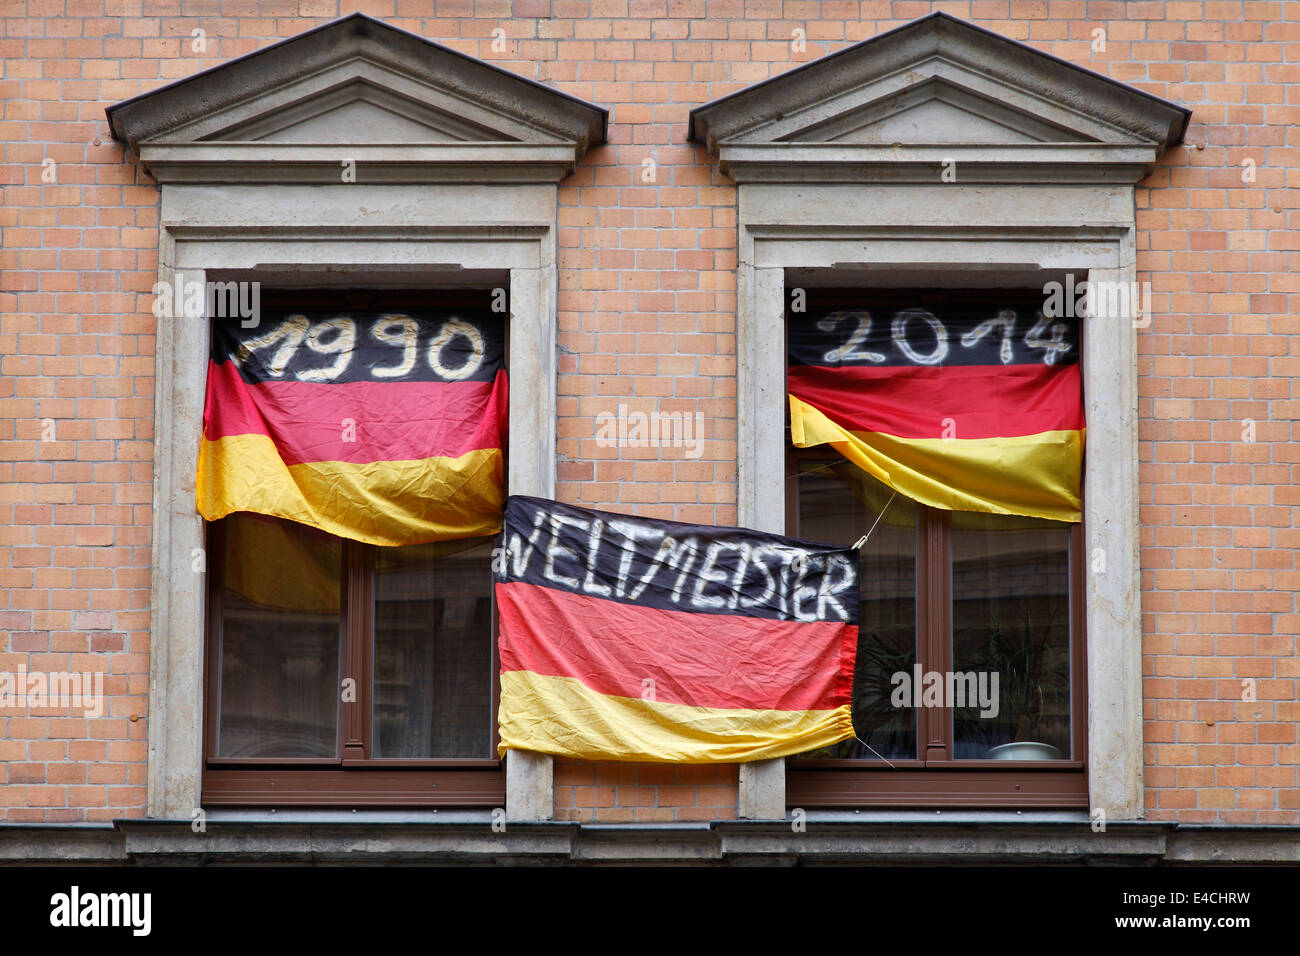 Germany Football World Champion 1954 1974 1990 and 2014; Flags with the year dates at the windows of an German fan - Stock Image